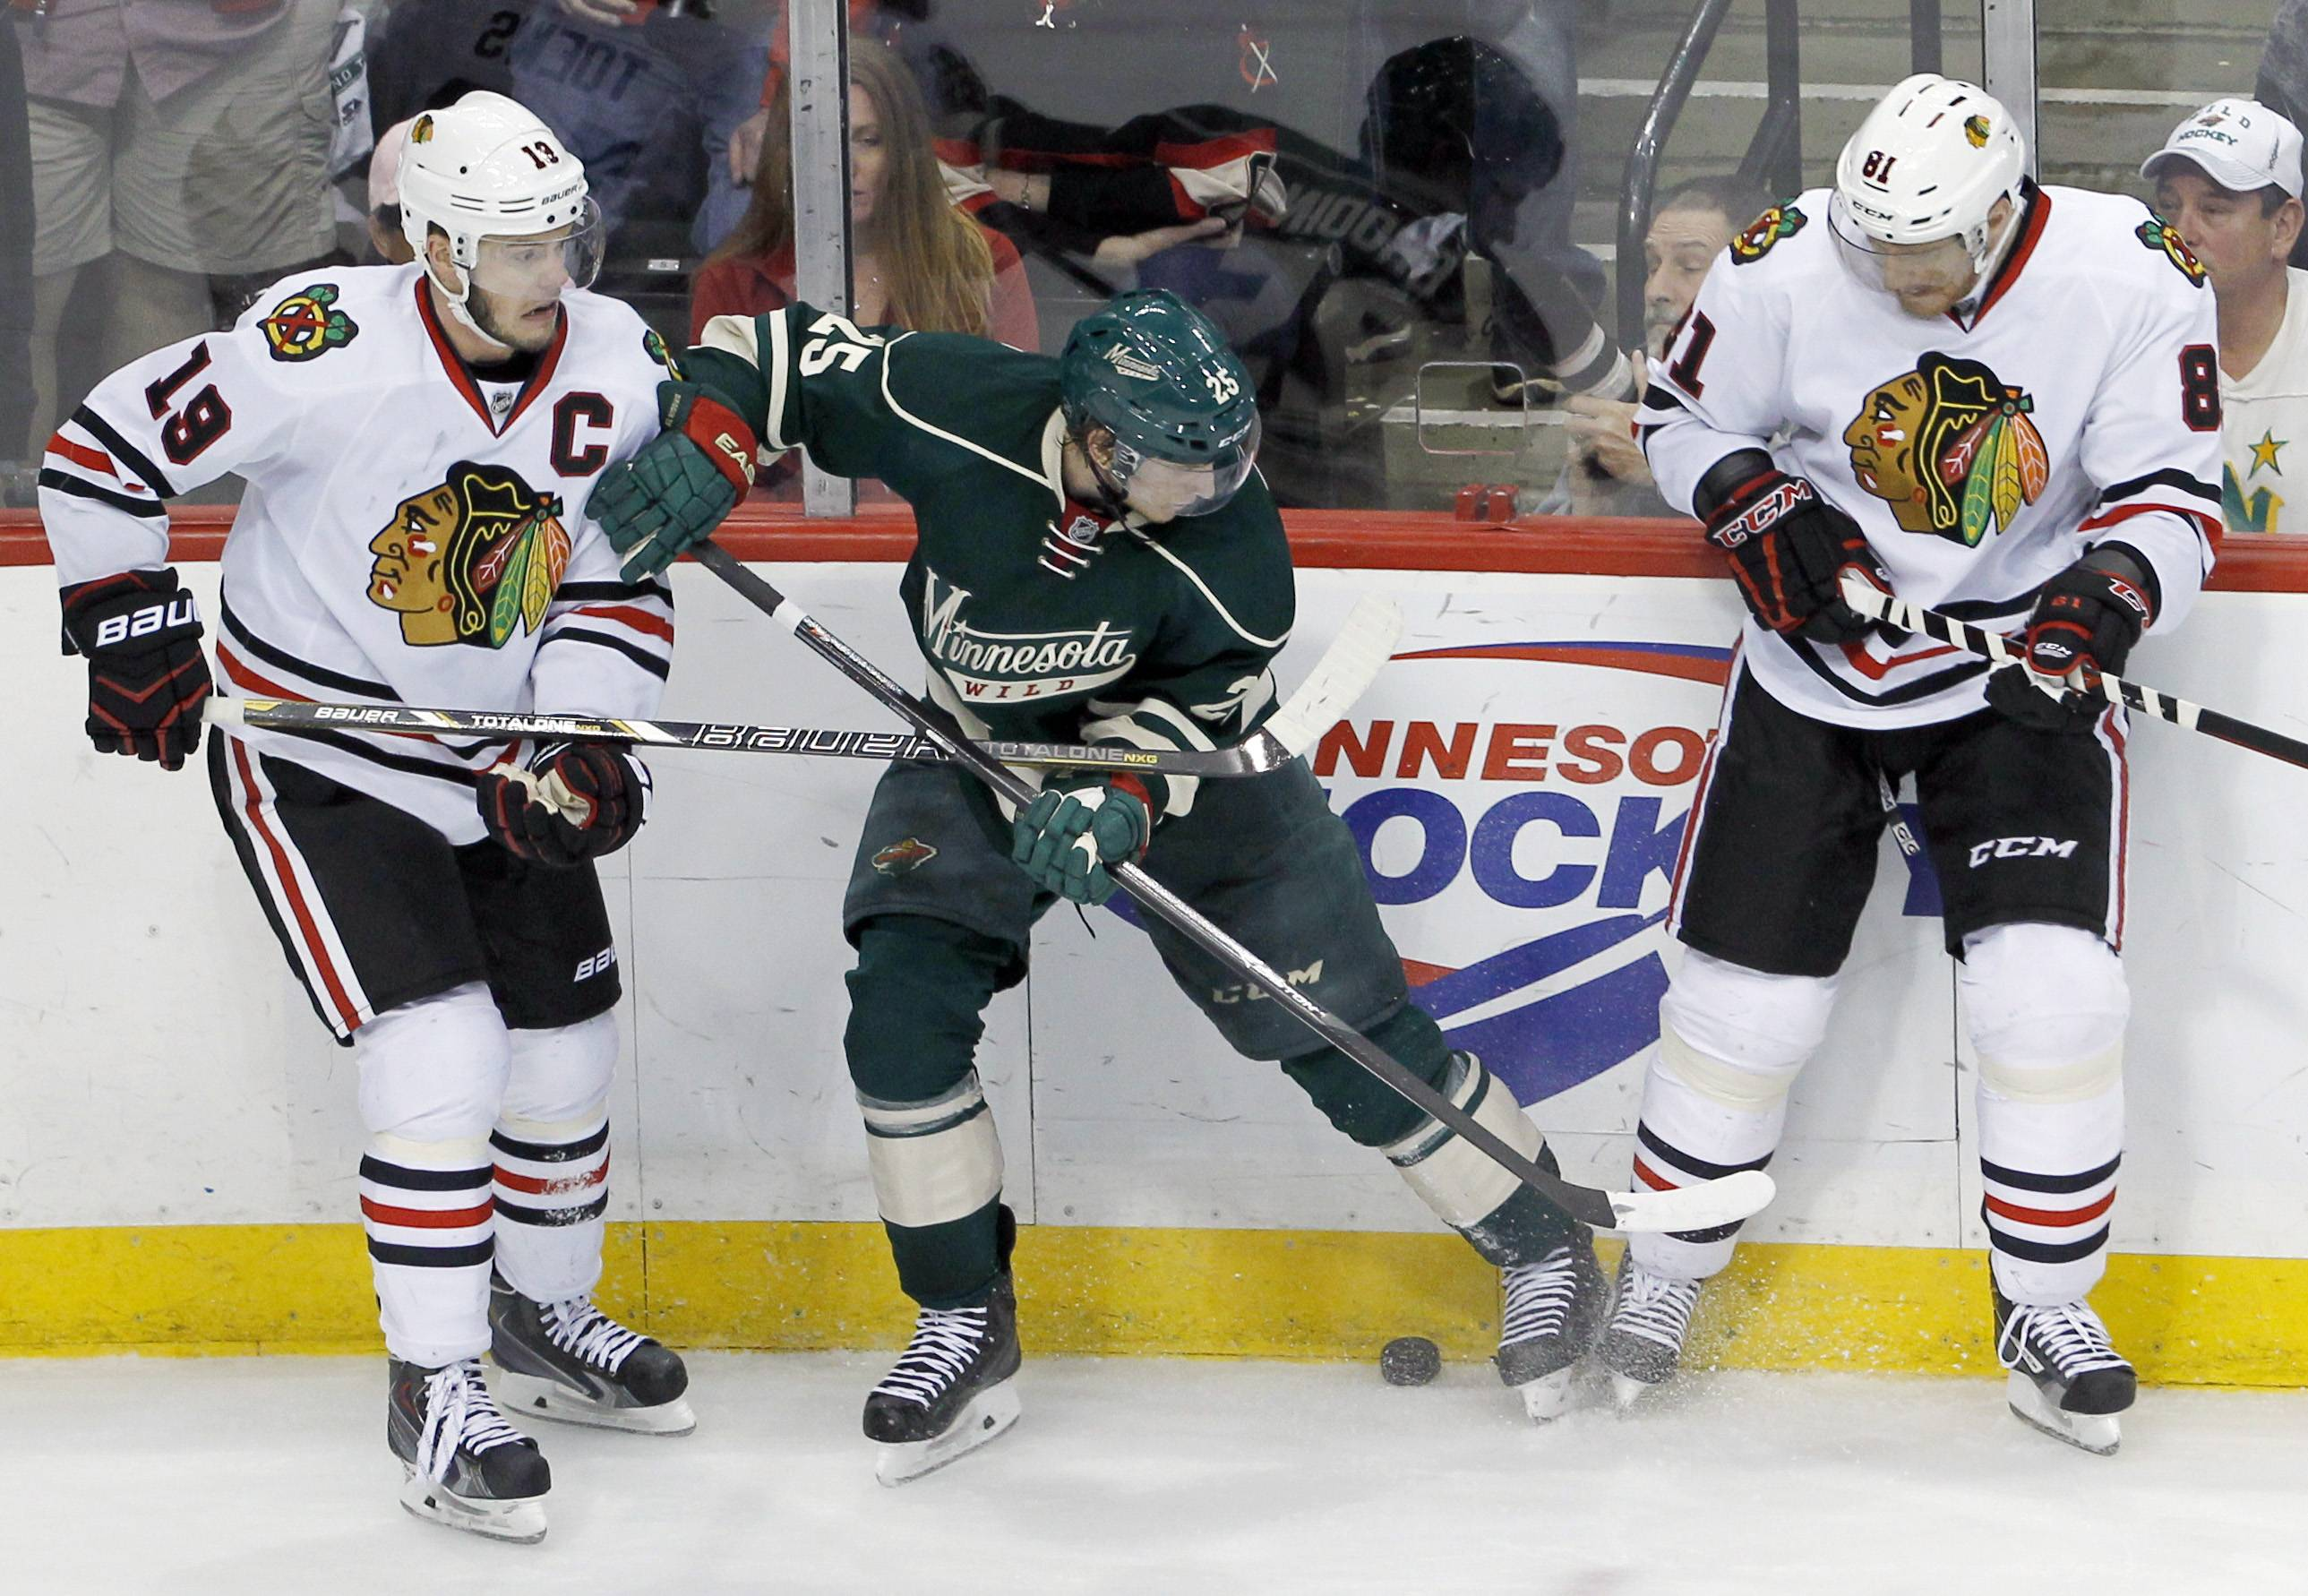 Minnesota Wild defenseman Jonas Brodin (25) is caught between Chicago Blackhawks center Jonathan Toews (19) and Blackhawks right wing Marian Hossa (81), of Czech Republic, as they try to gain control of the puck during the third period .